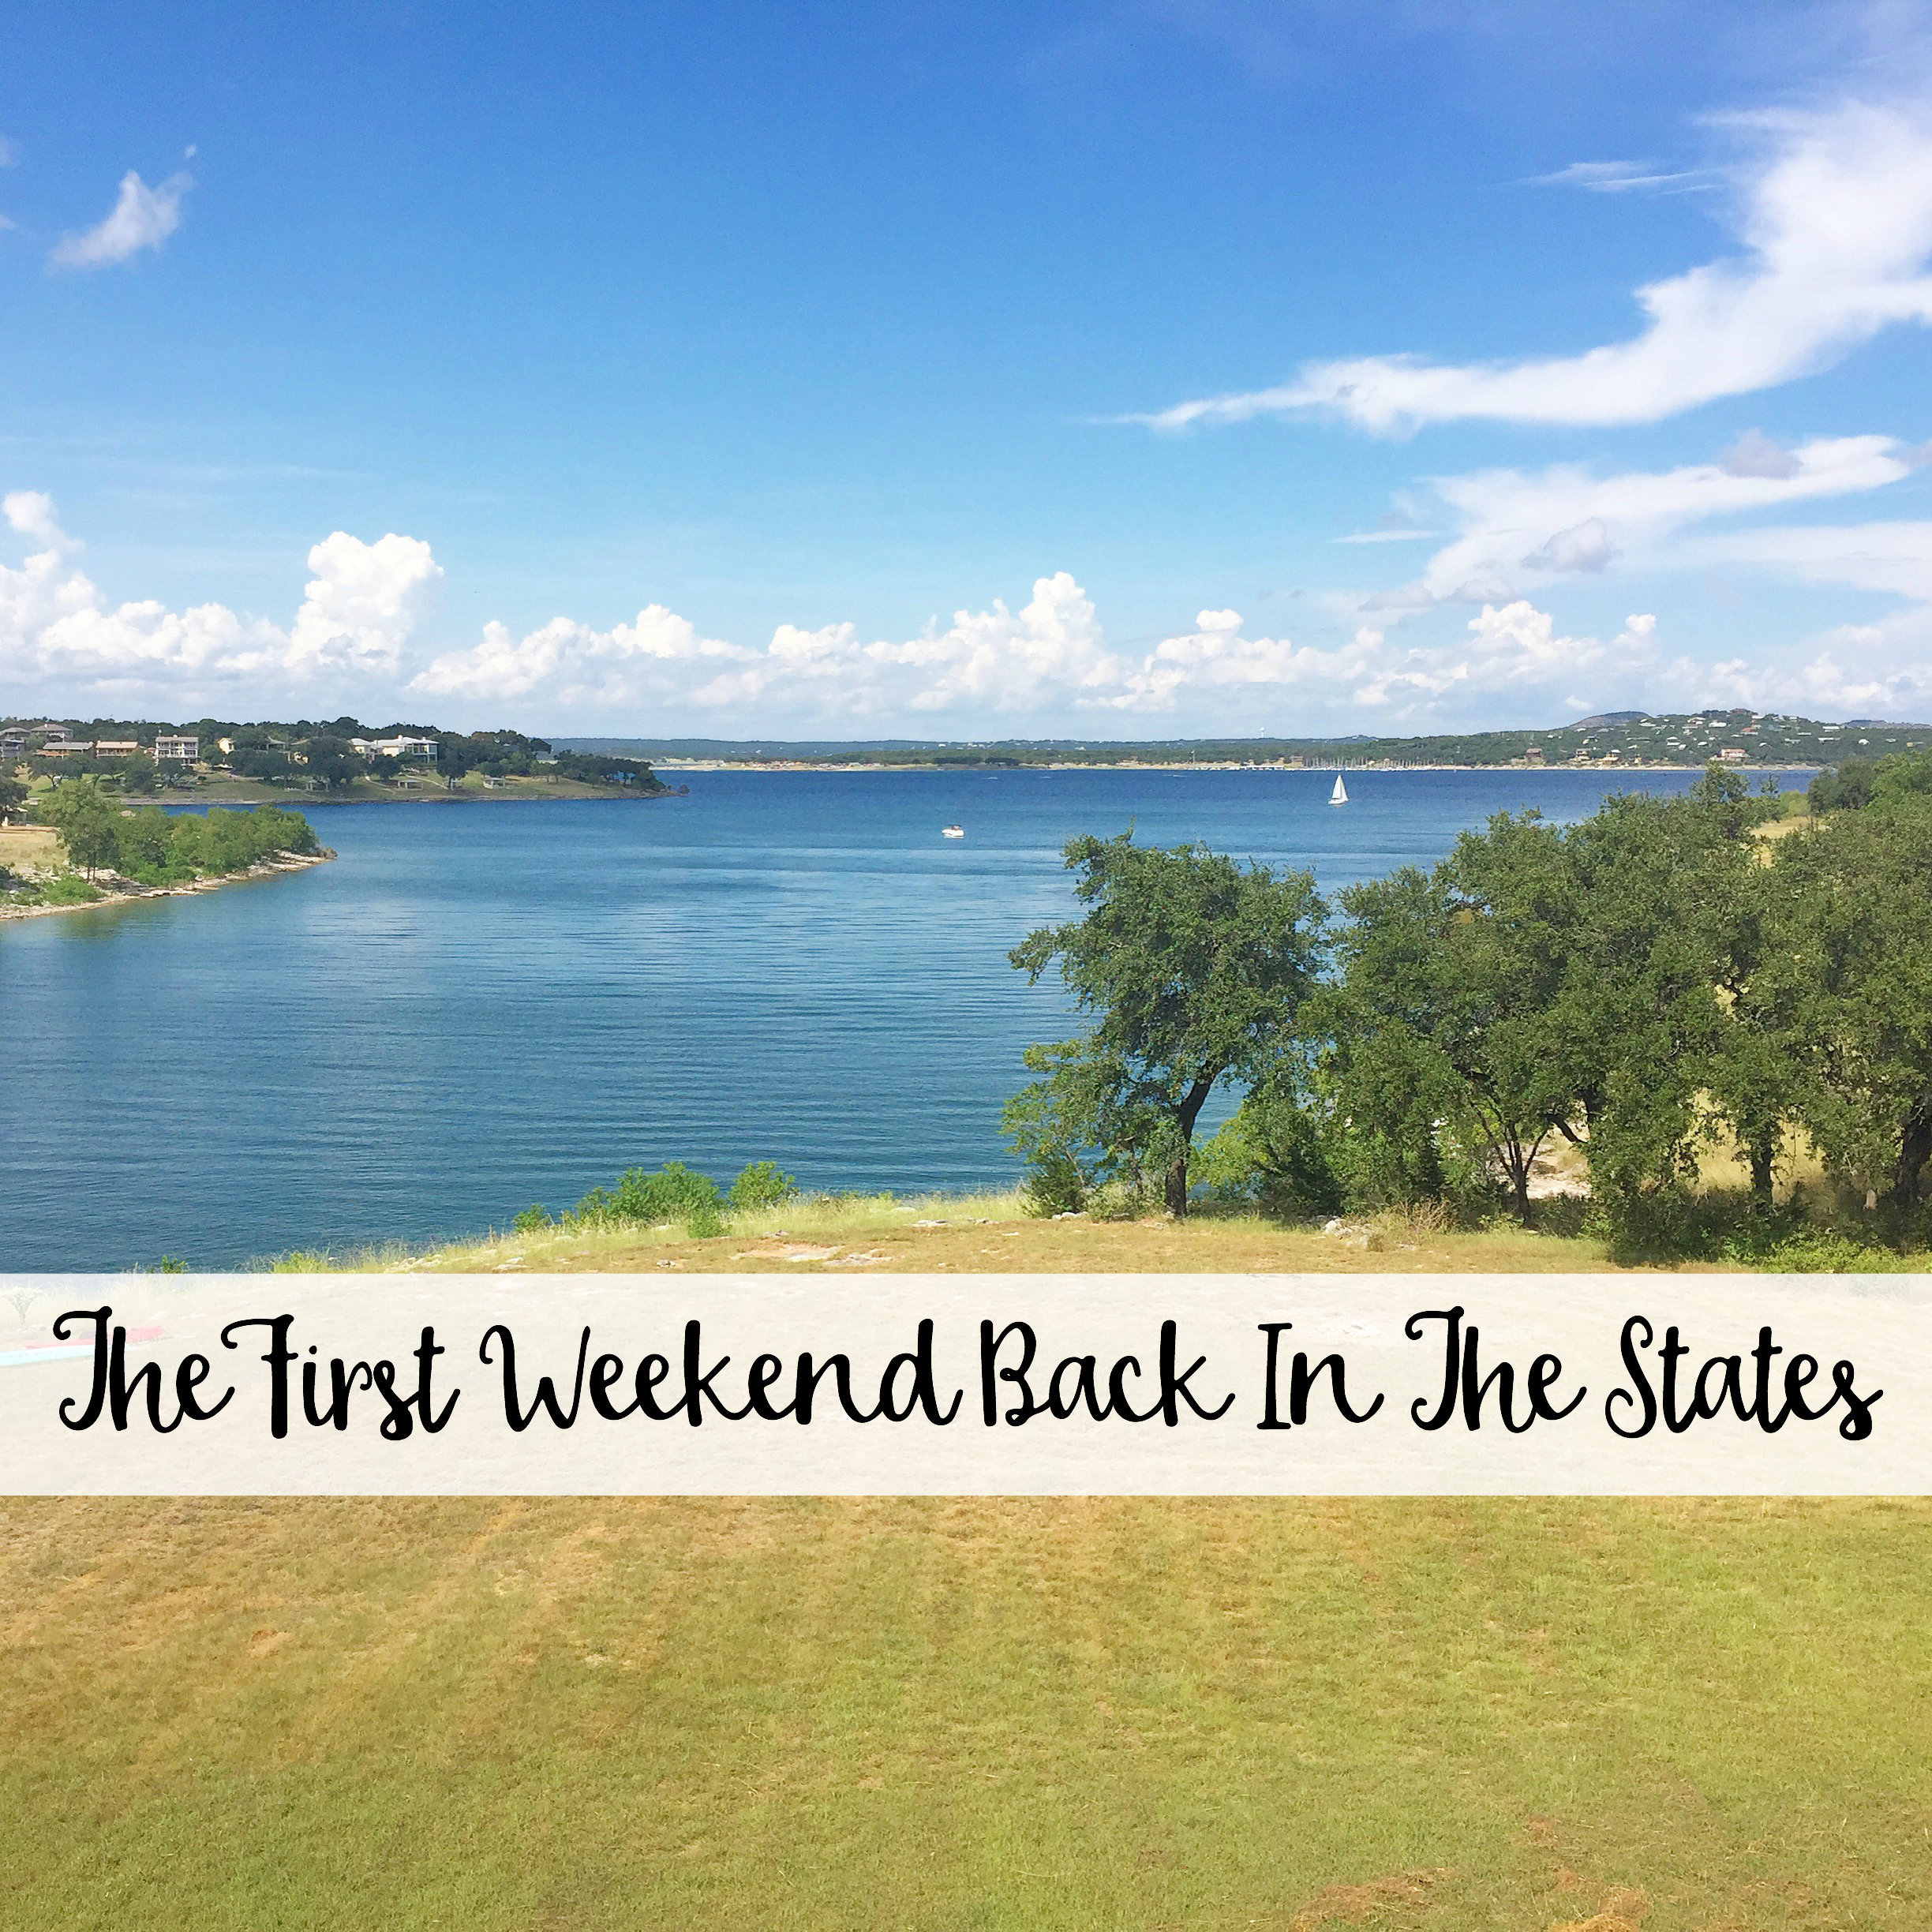 The Wandering Weekenders- Our first weekend back in the states was spent at Canyon Lake for one of the last warm weekends of the year!